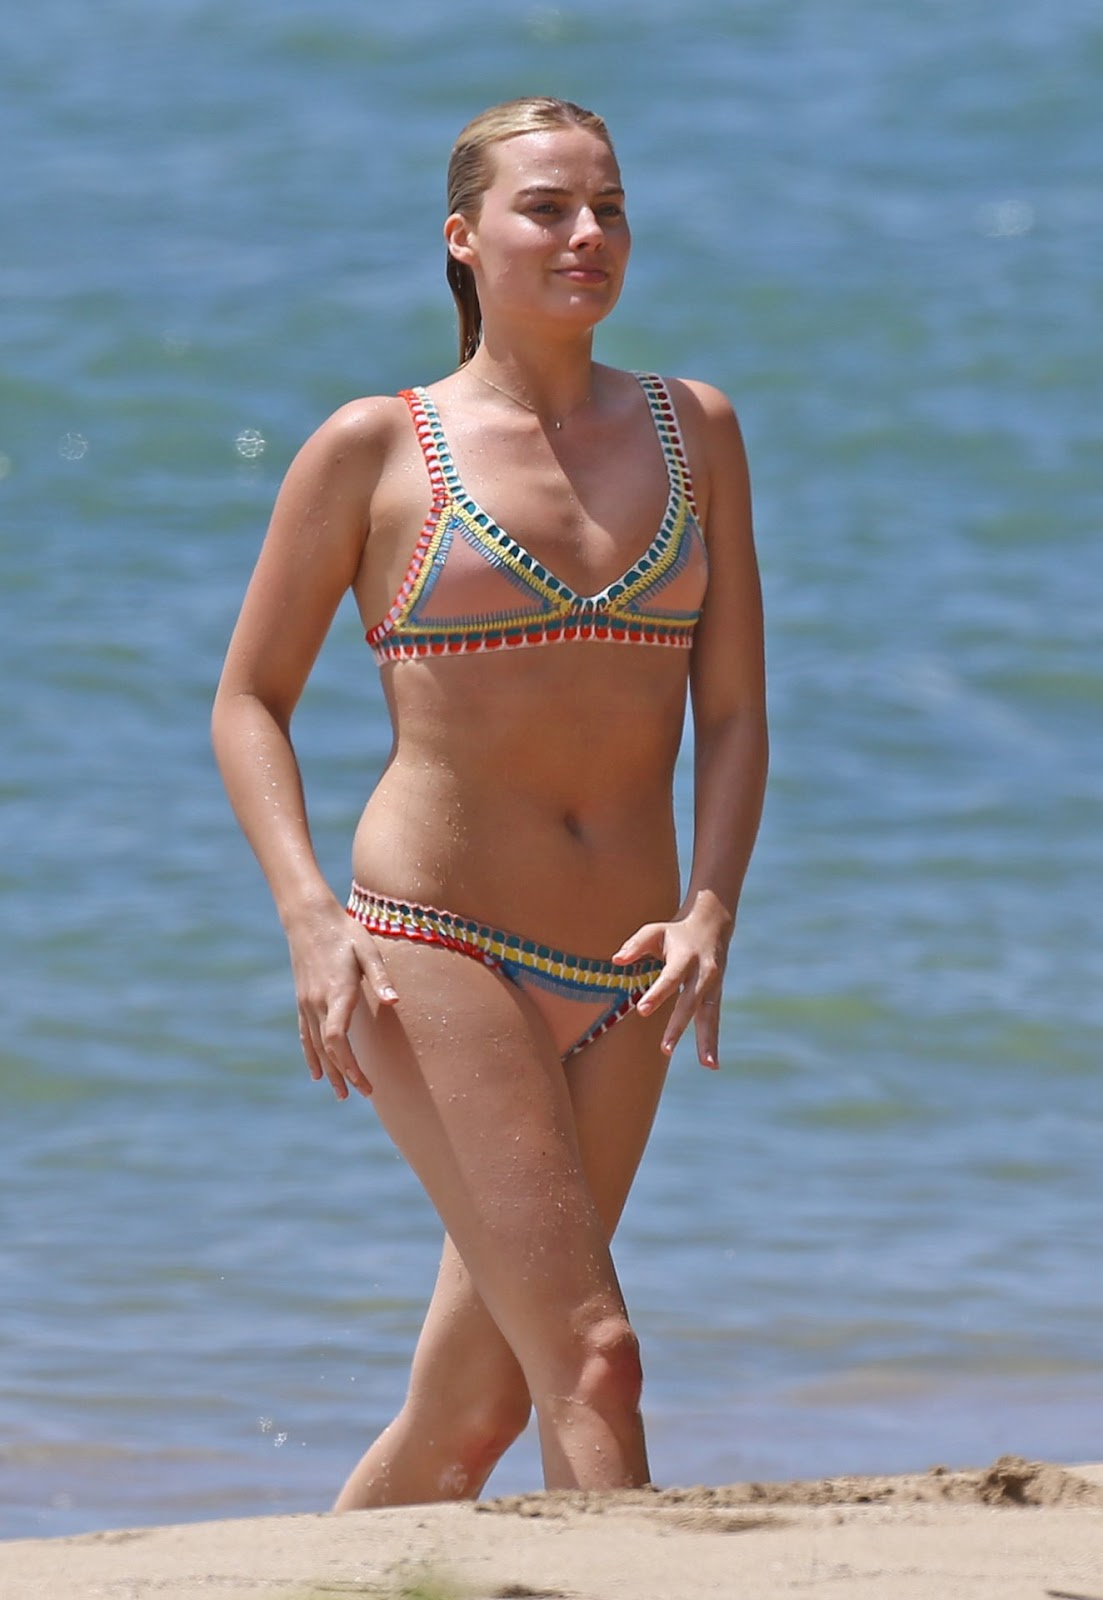 Margot Robbie bares bikini body on Hawaii beach